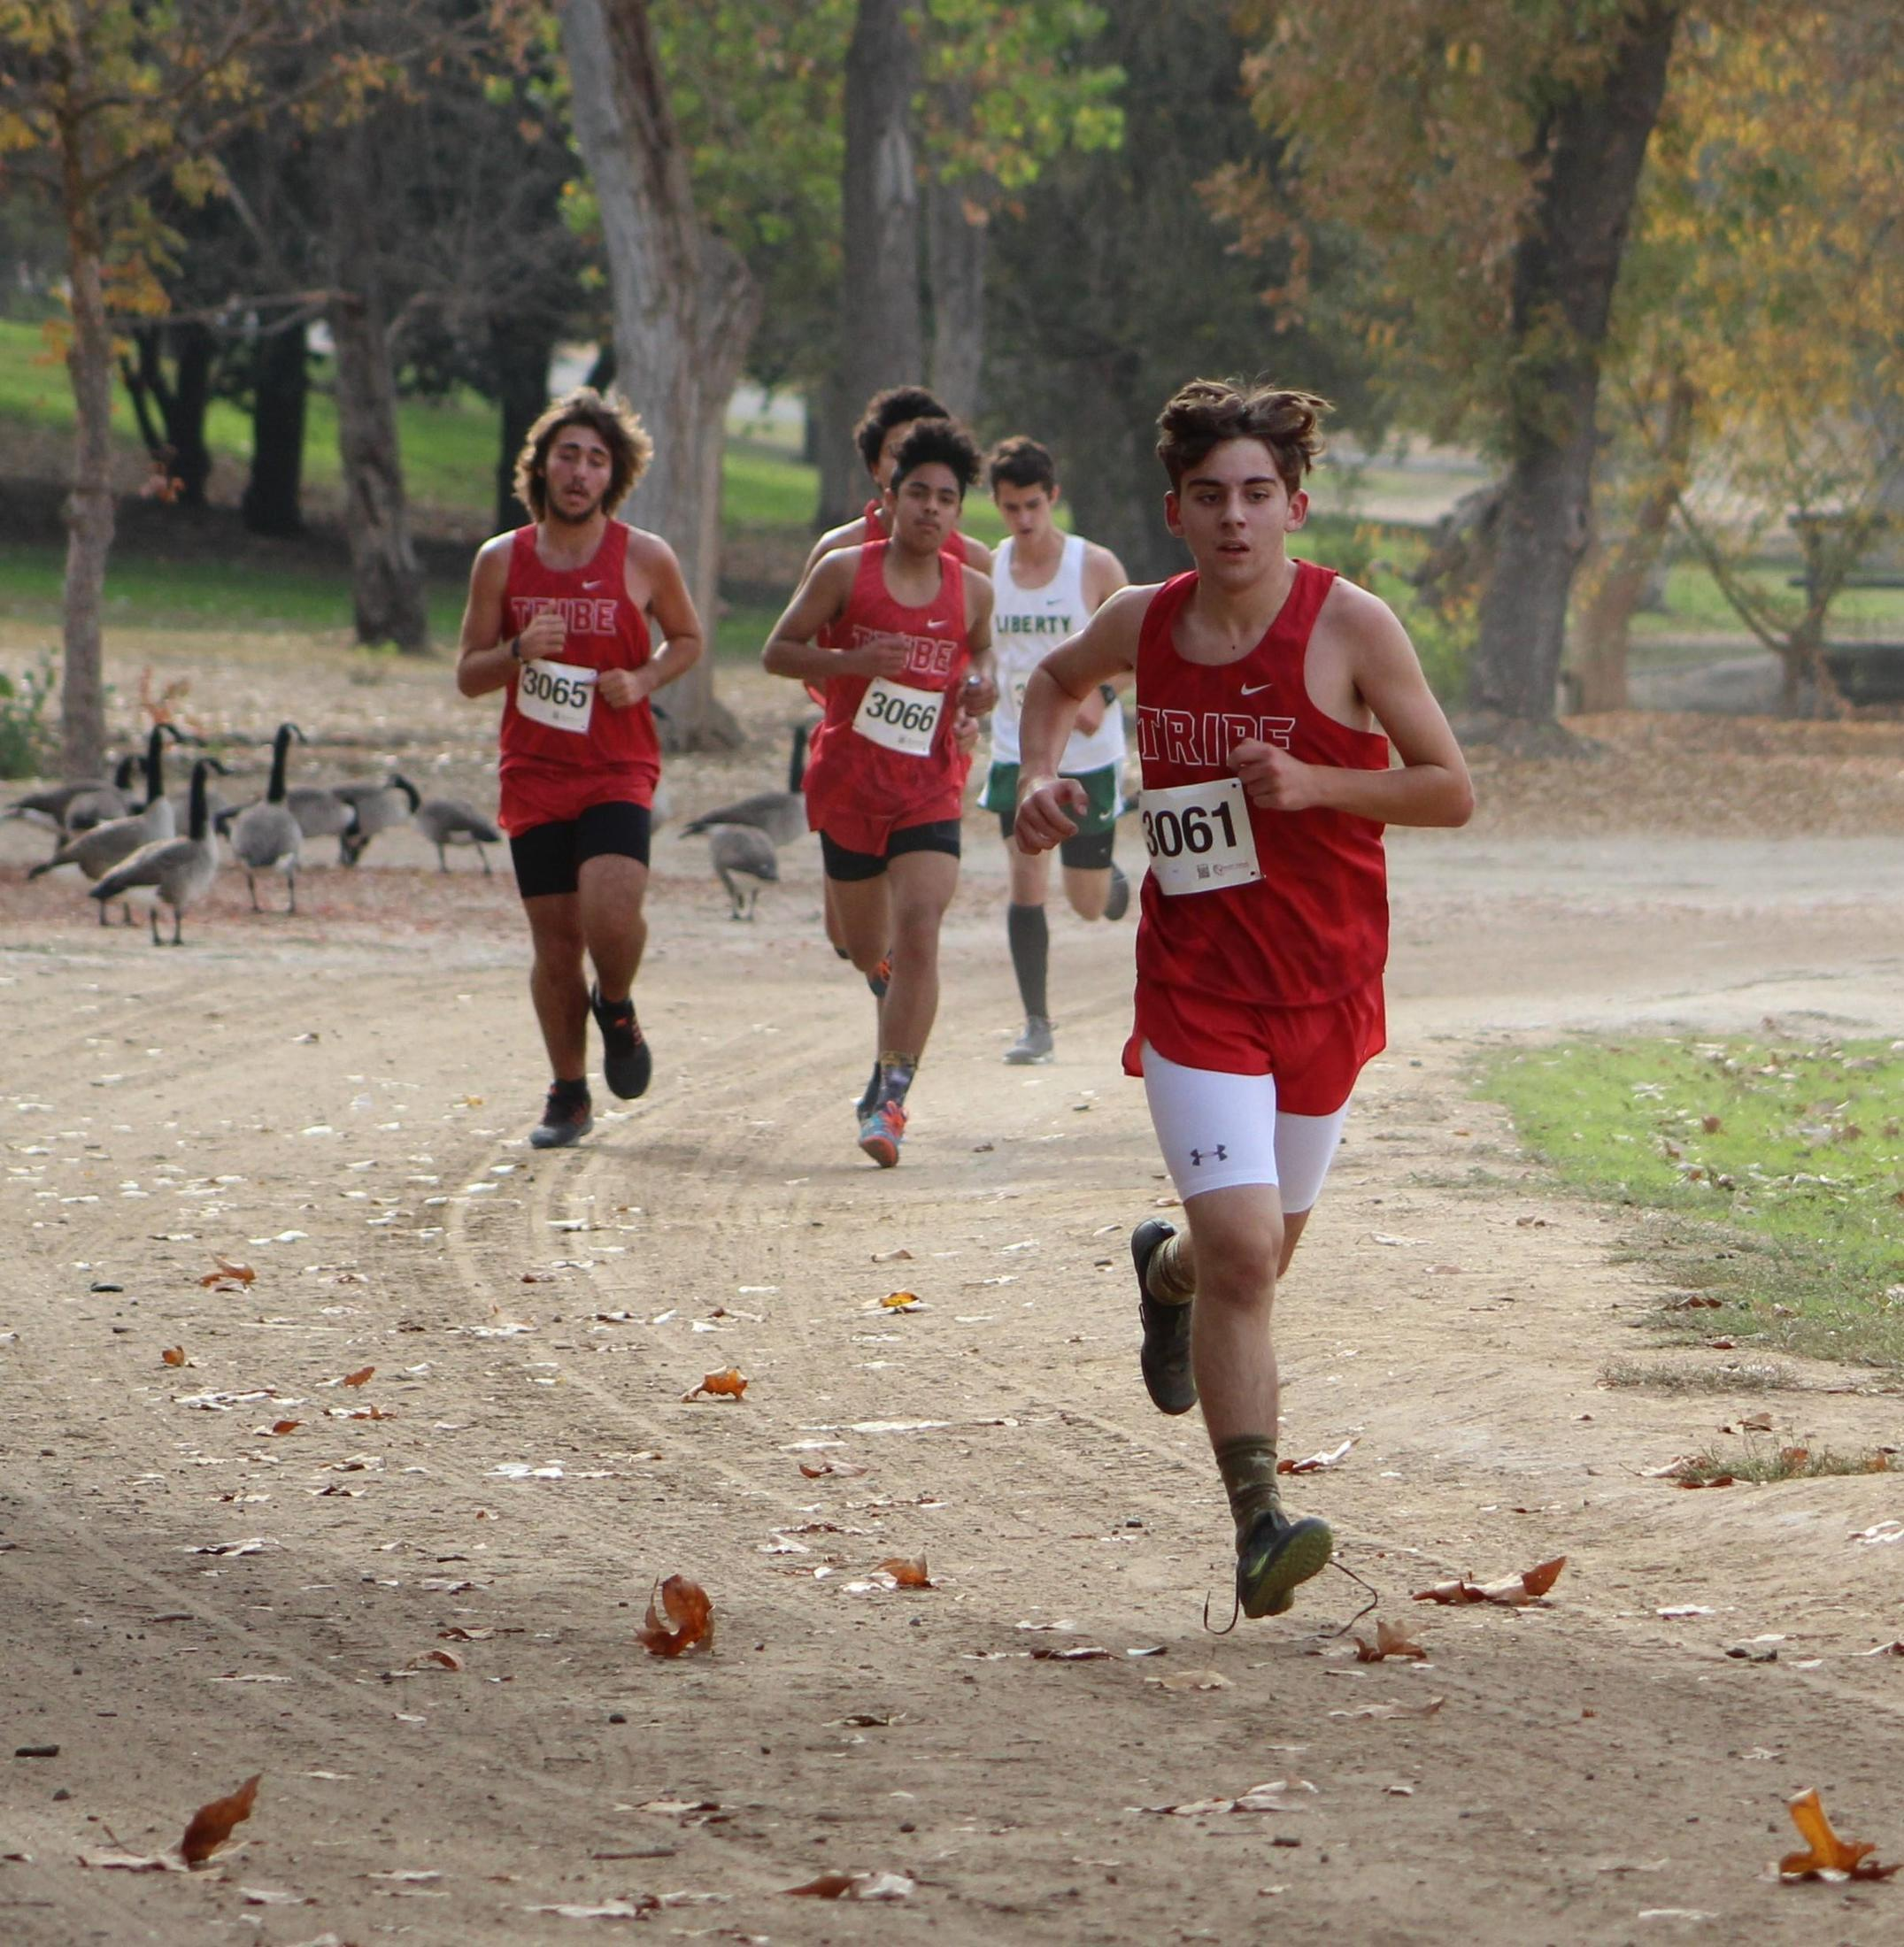 Carson Borba, Antonio Brasil, and Angel Gonzales running